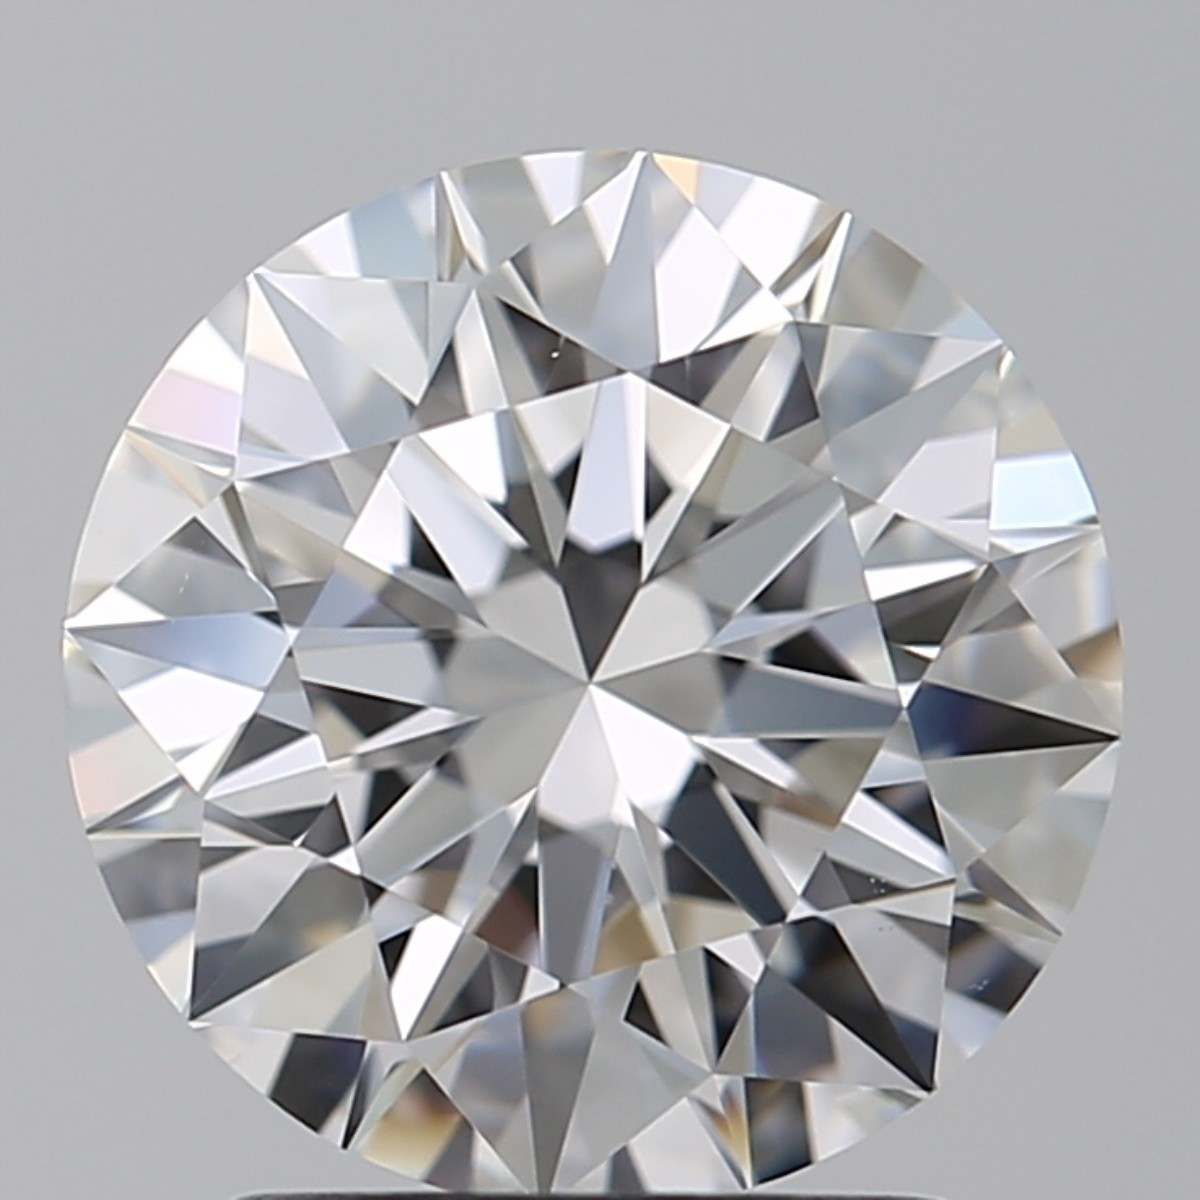 2.12 Carat Round Brilliant Diamond (E/VS1)